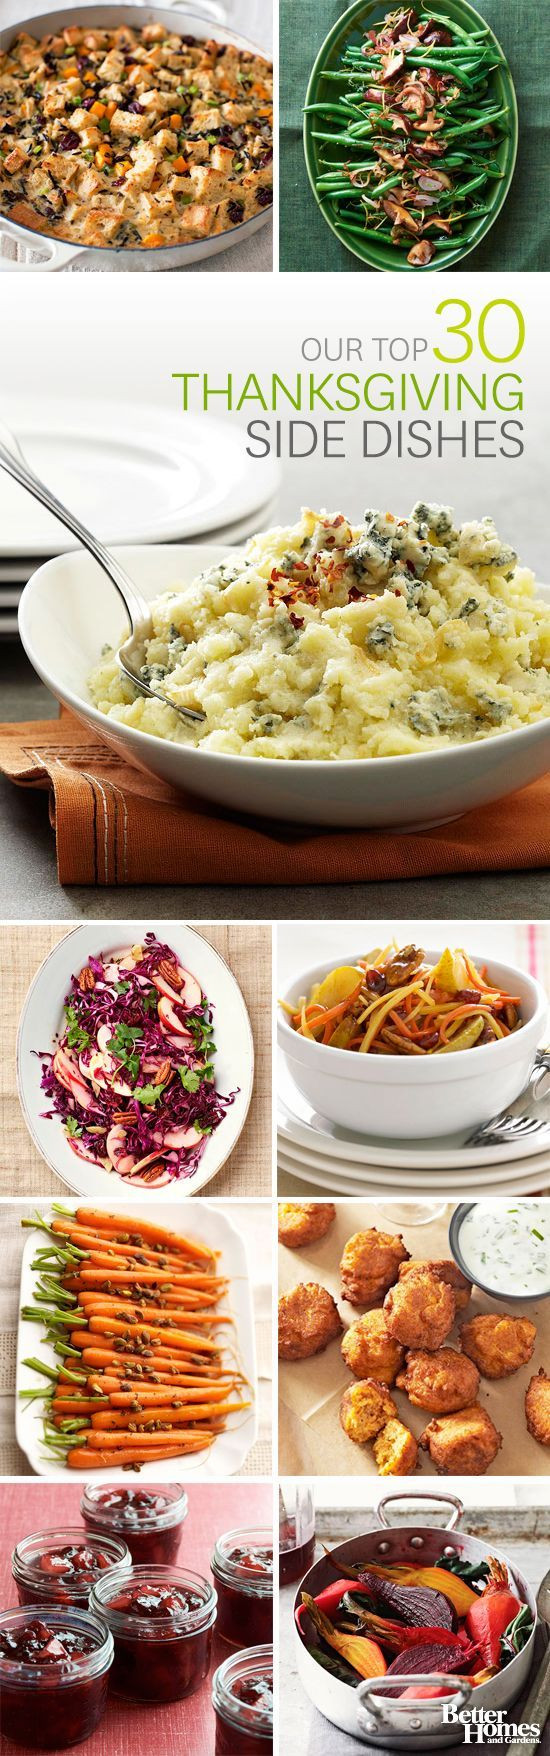 Great Christmas Side Dishes  212 best images about Thanksgiving recipes on Pinterest